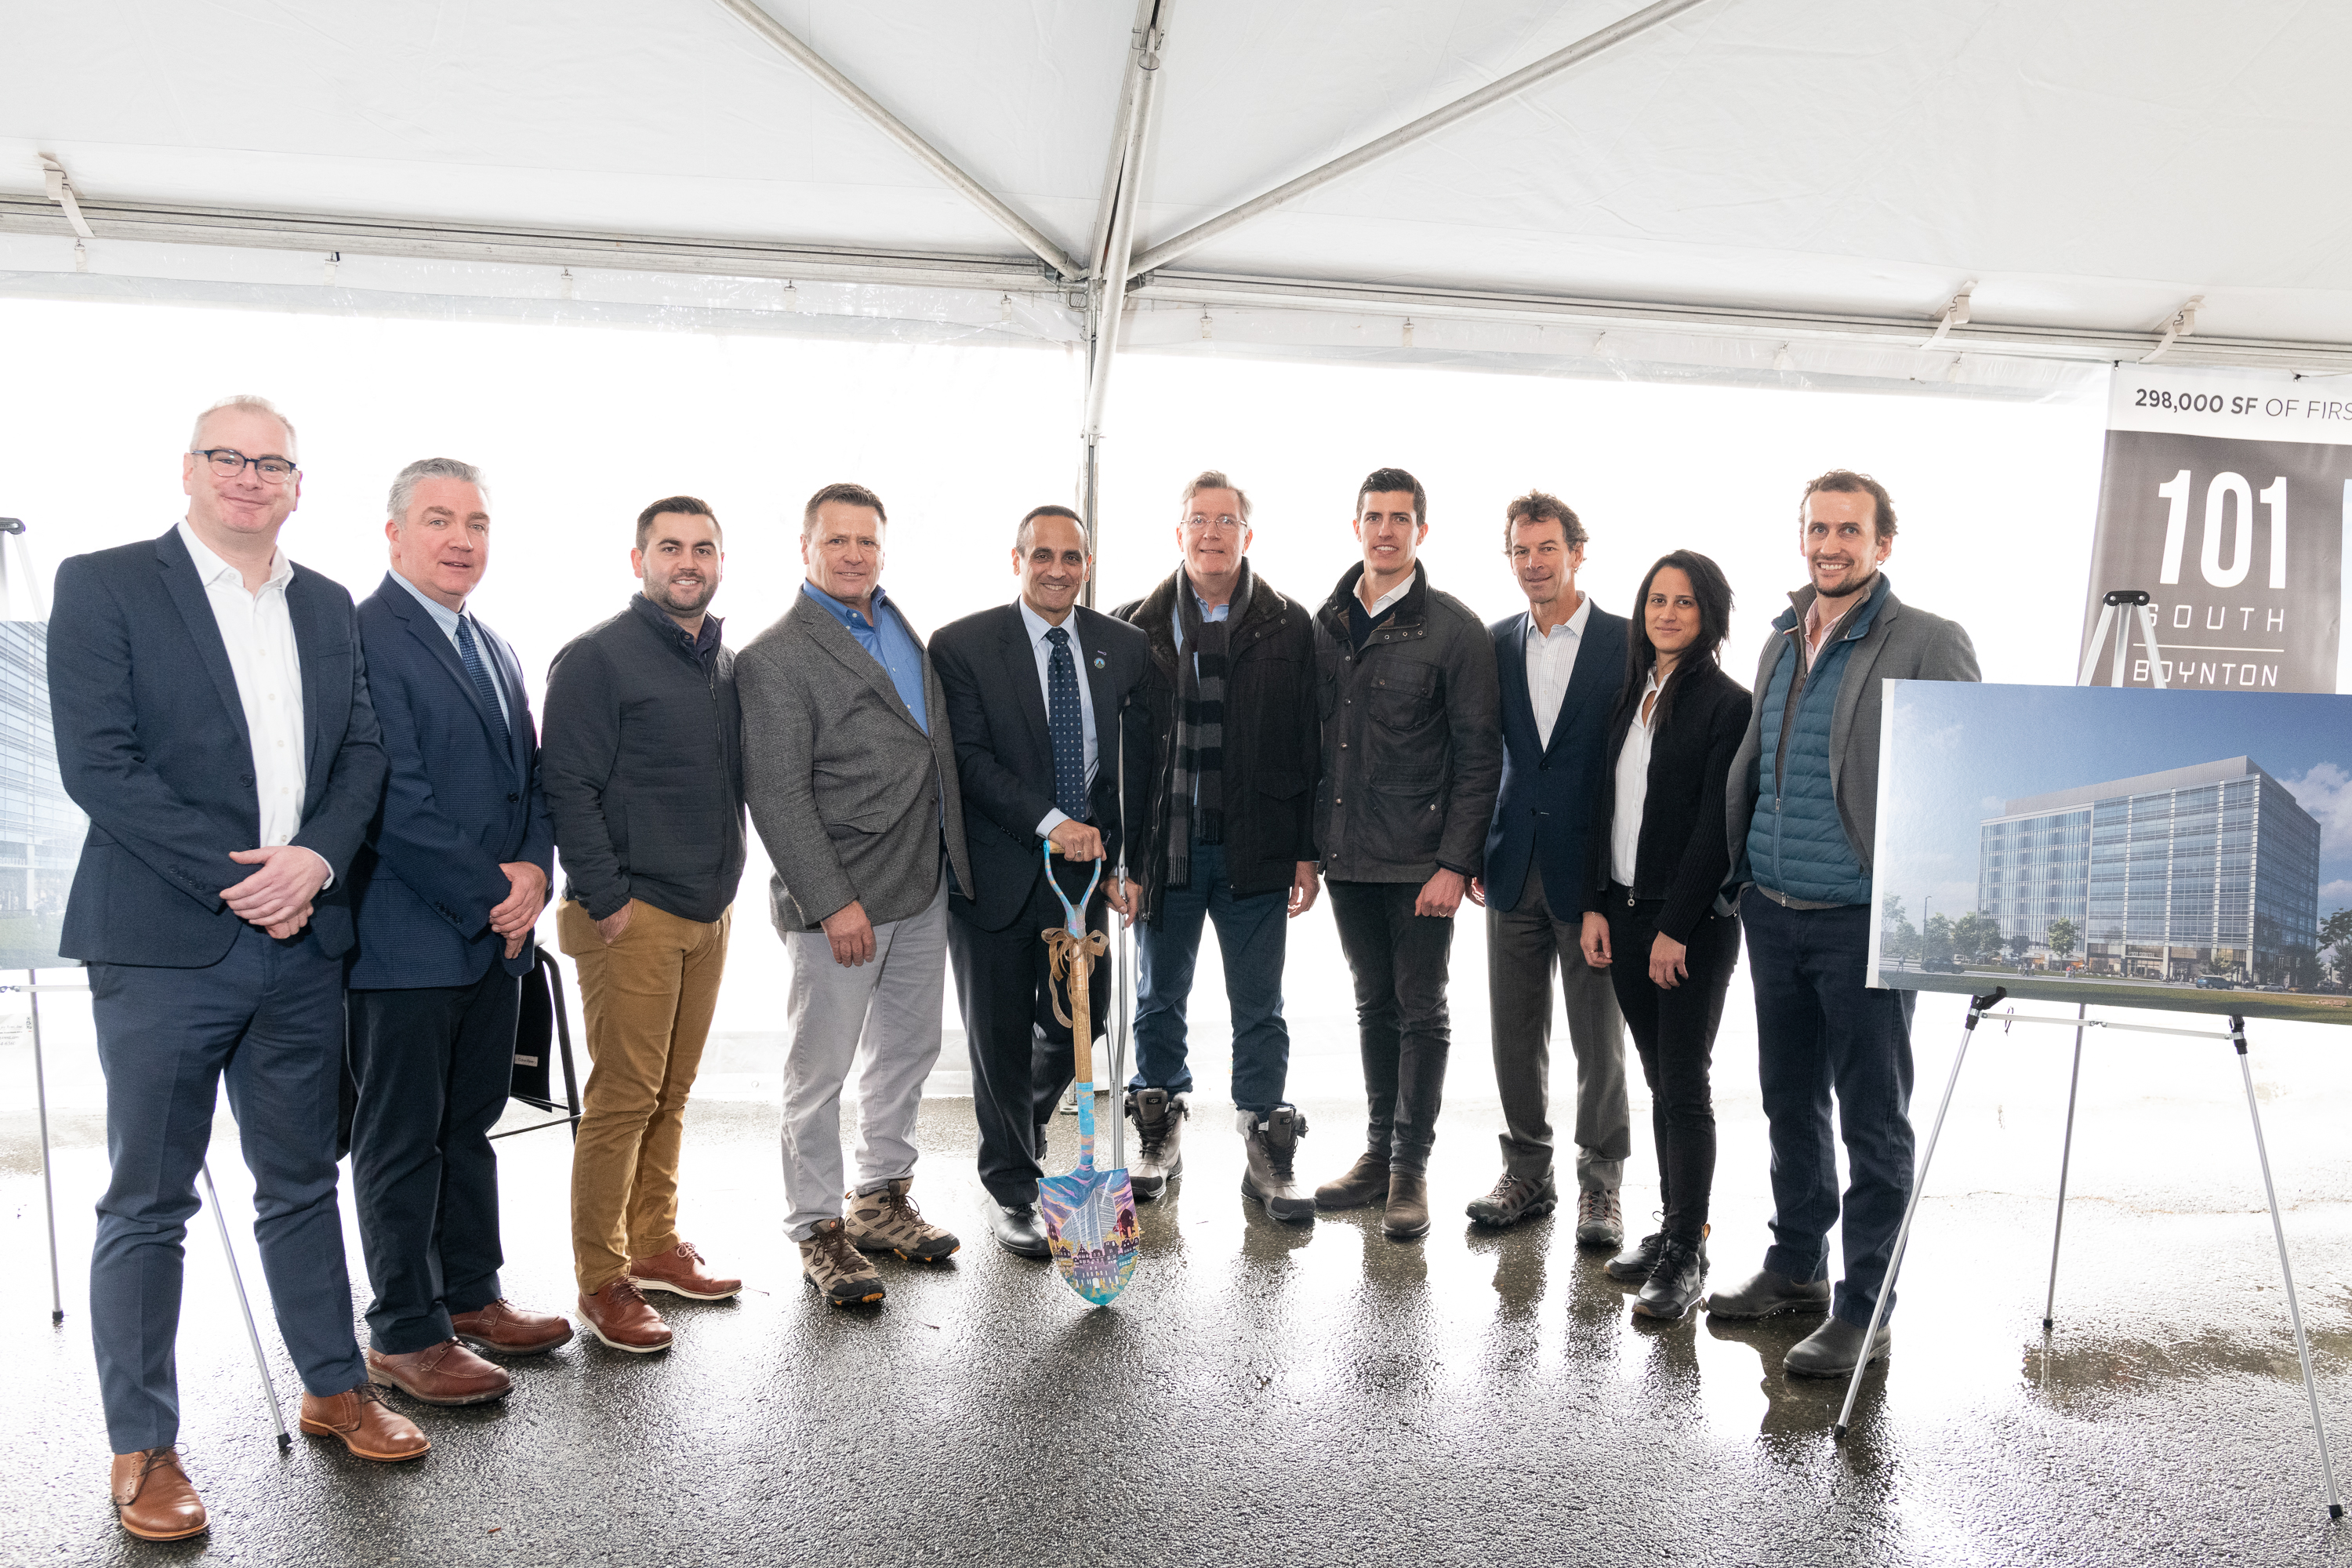 101 south ground breaking